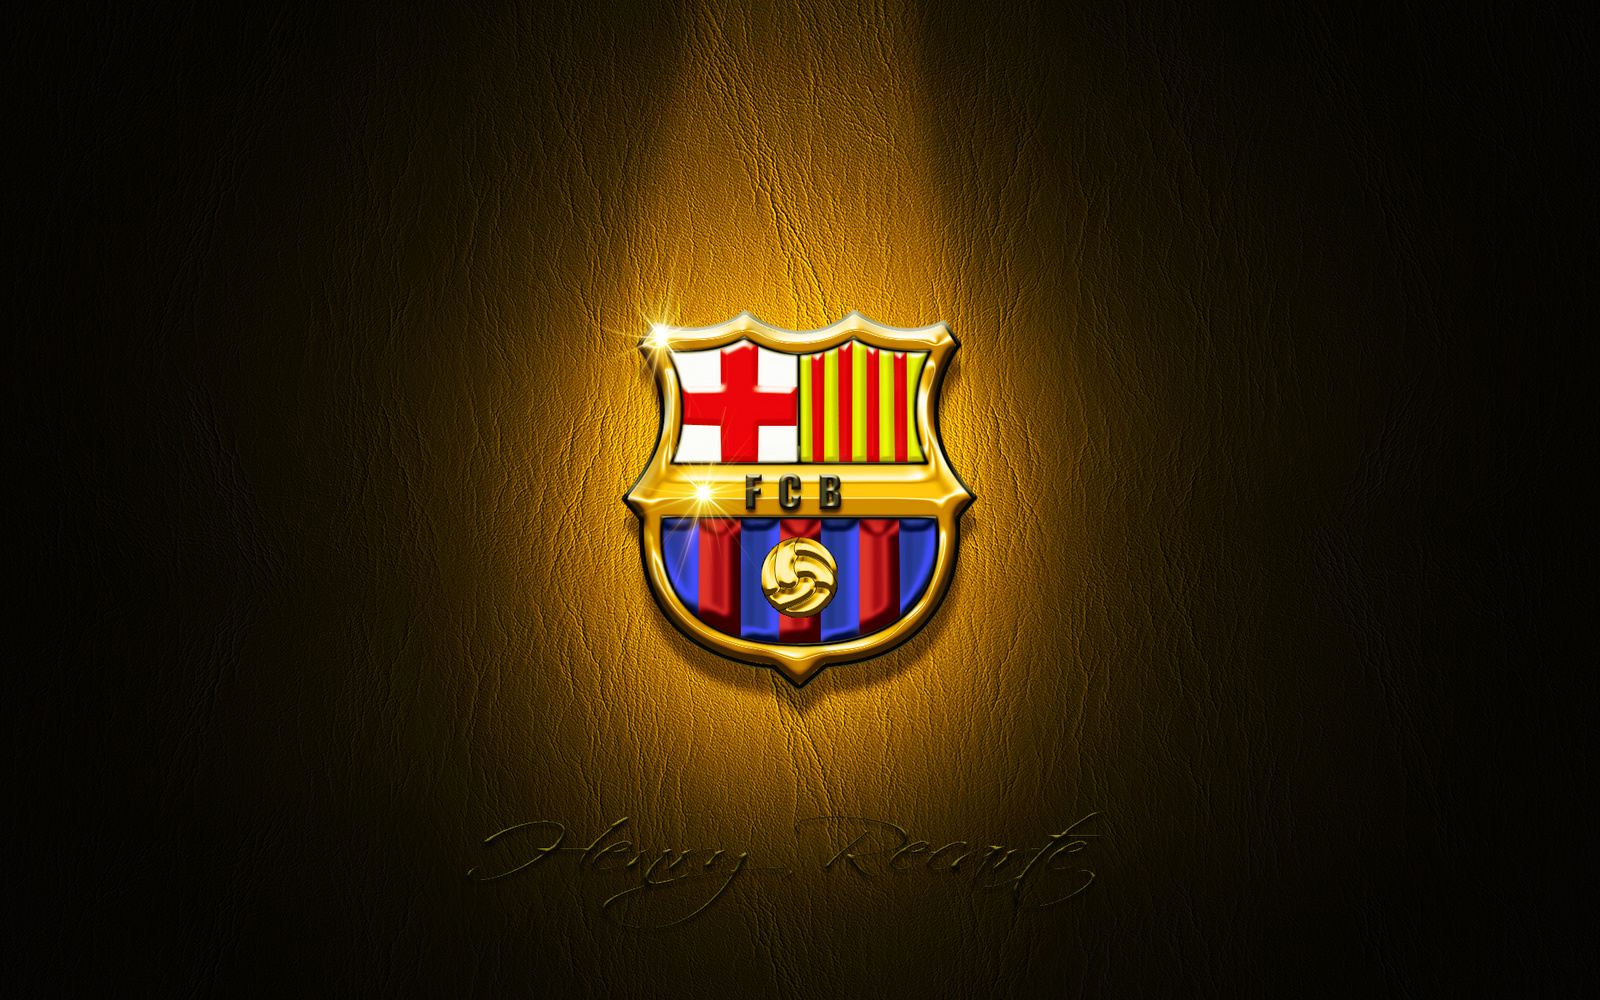 Barcelona Logo HD Wallpapers 2013-2014 | Football News And ...